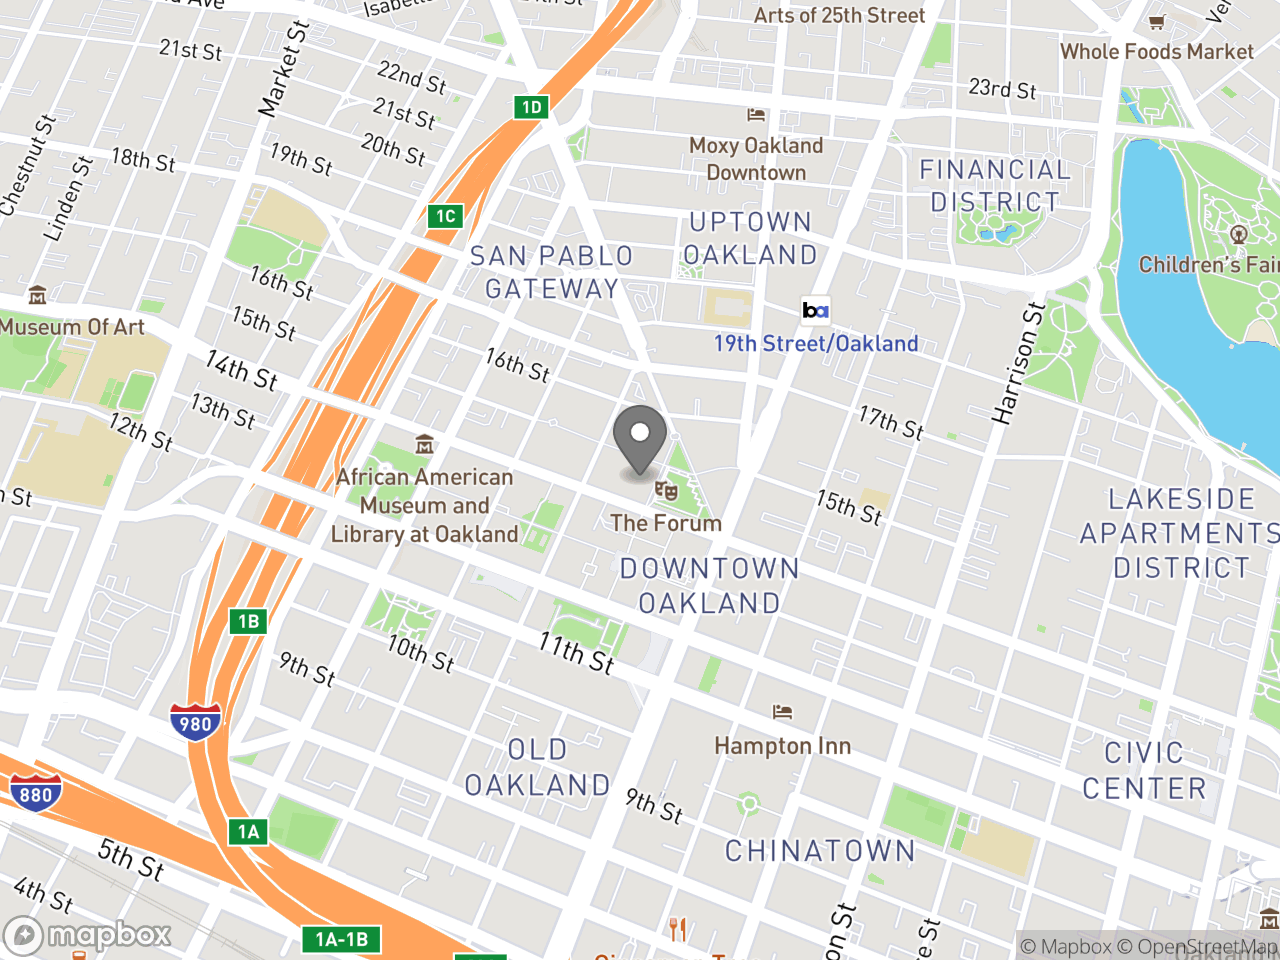 Map image for CANCELED Oakland Workforce Development Board (OWDB) - Regular Meeting May 7, 2020, located at 1 Frank H. Ogawa Plaza in Oakland, CA 94612